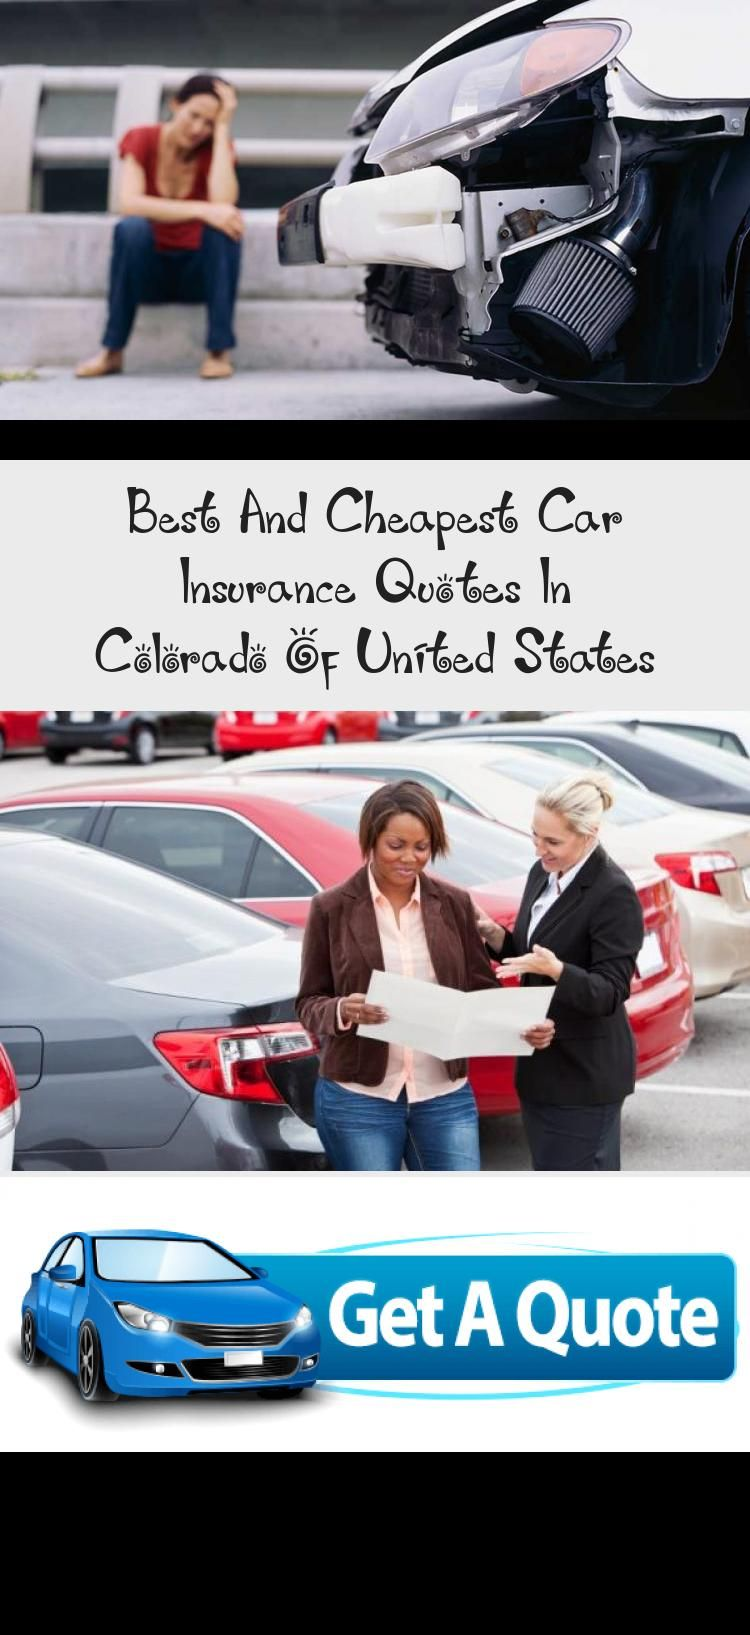 Best And Cheapest Car Insurance Quotes In Colorado Of United States In 2020 Cheap Car Insurance Quotes Car Insurance Auto Insurance Quotes